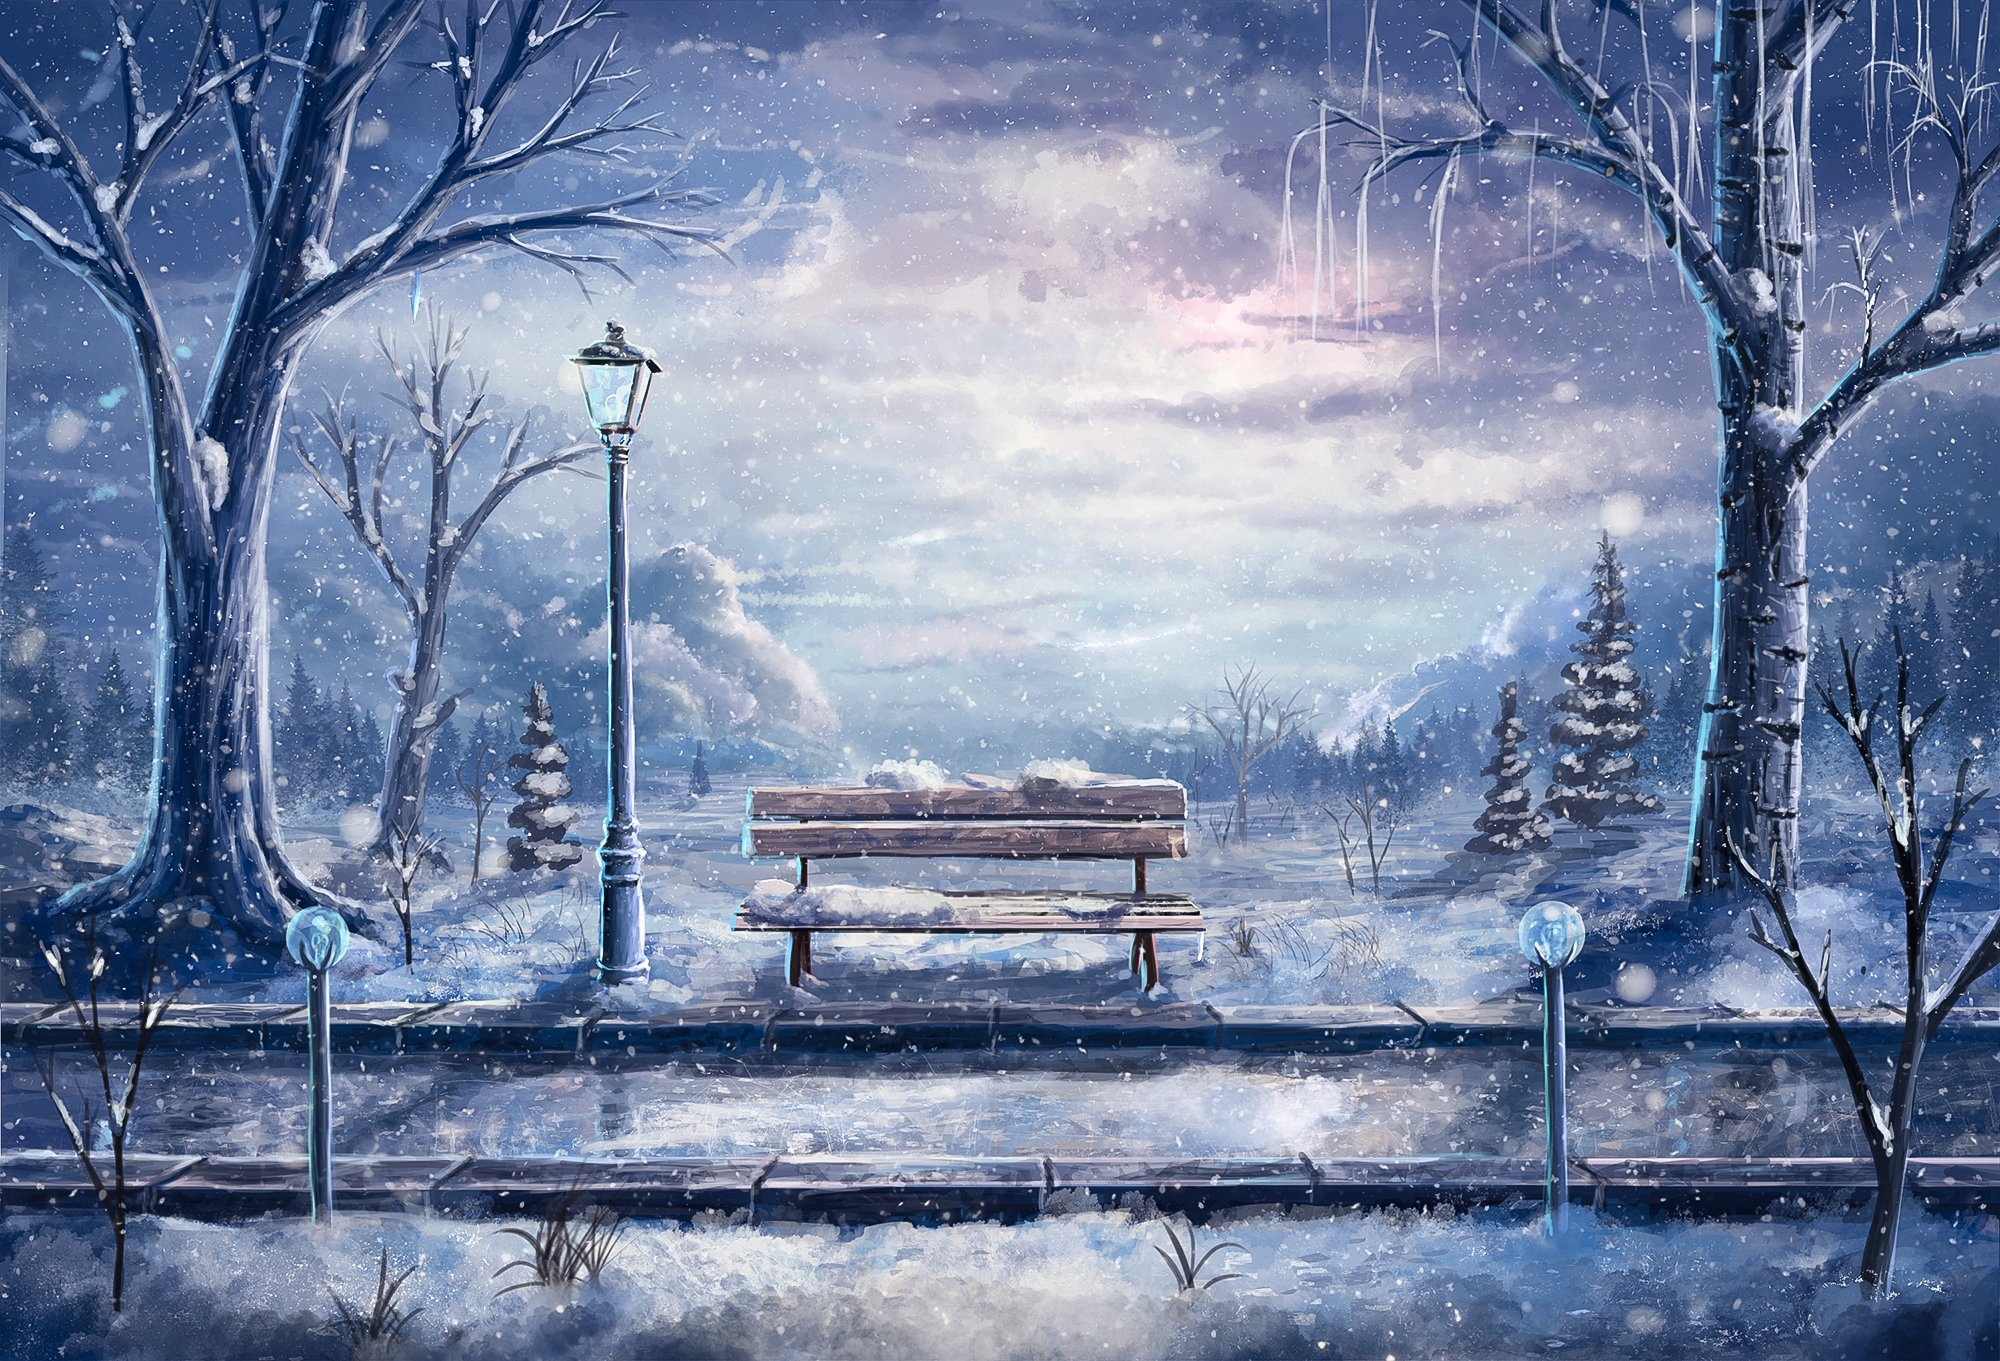 Anime paintings artistic mood snowflakes snow nature storm people ...